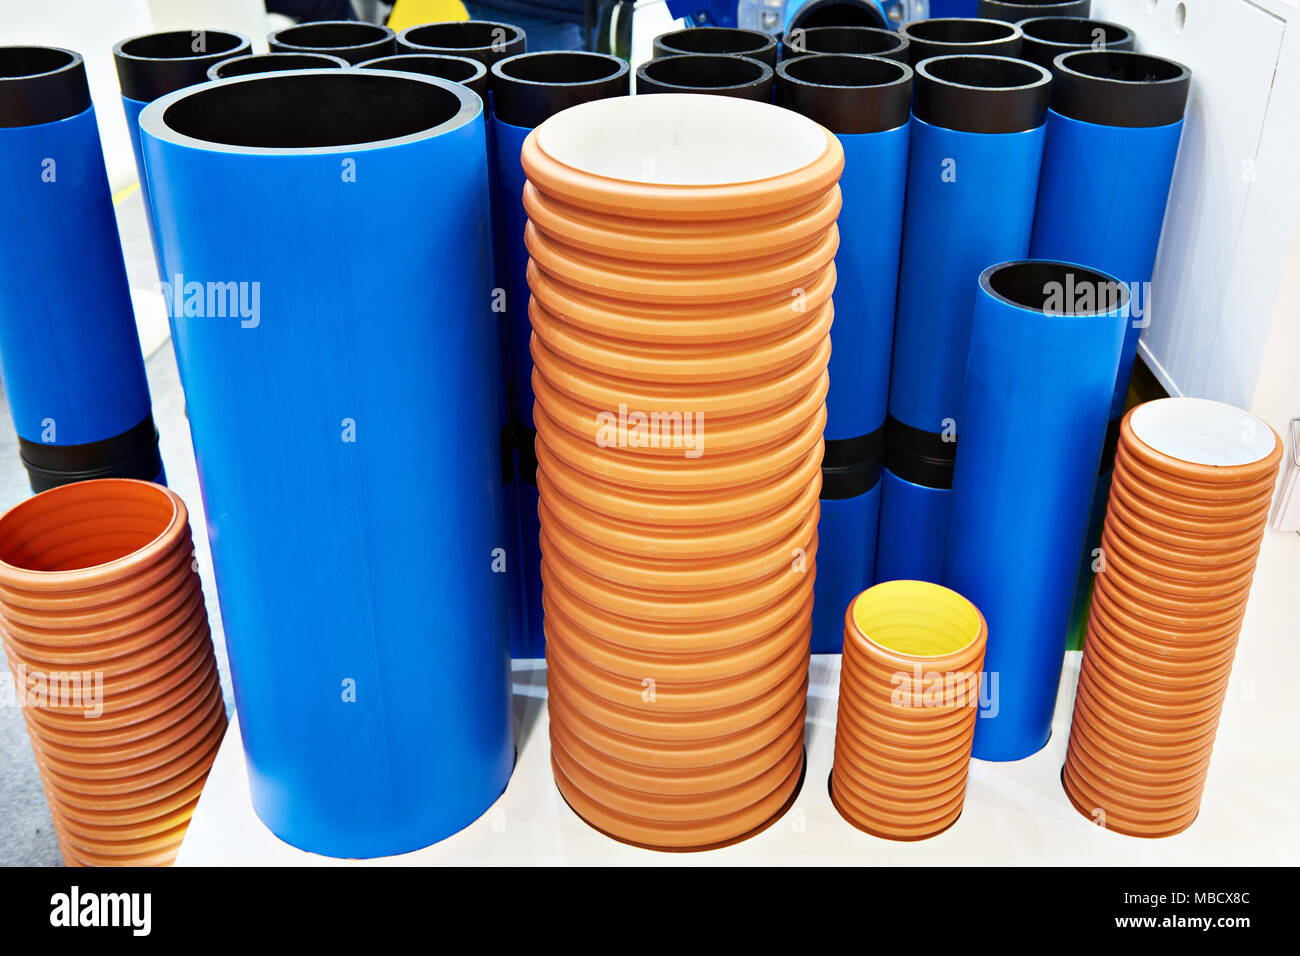 Pvc pipe plumbing system stock photos pvc pipe plumbing for Plastic water pipe